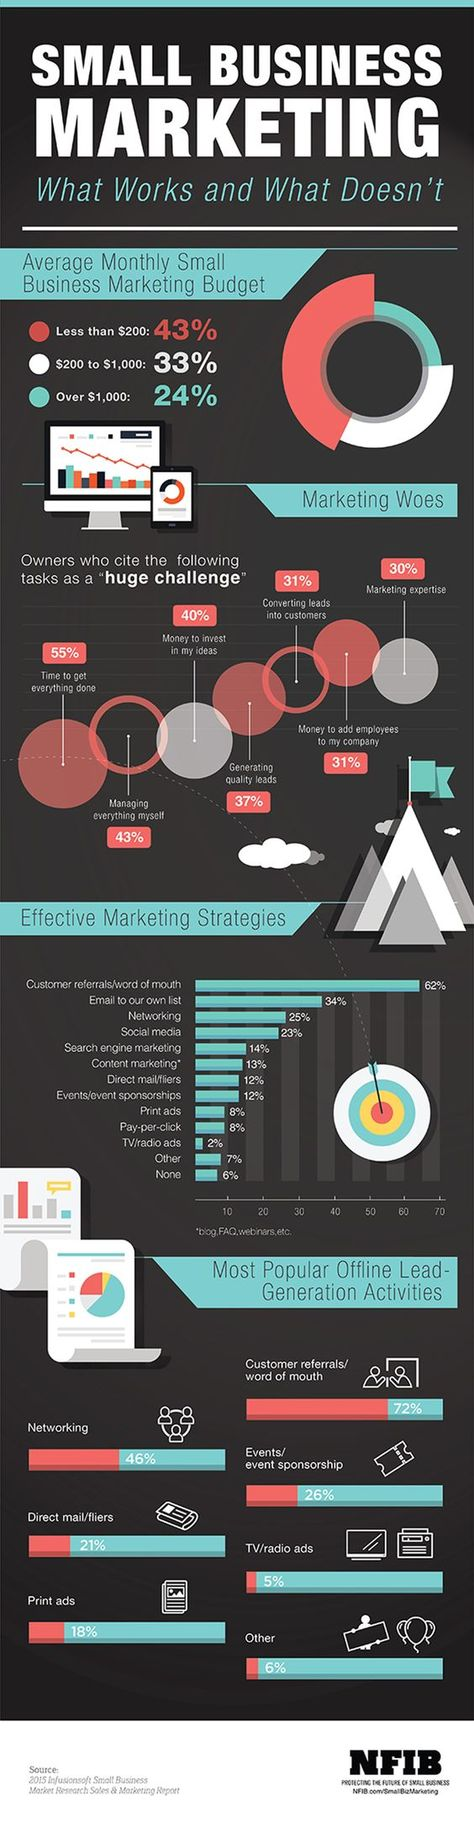 Infographic: Small Business Marketing | NFIB